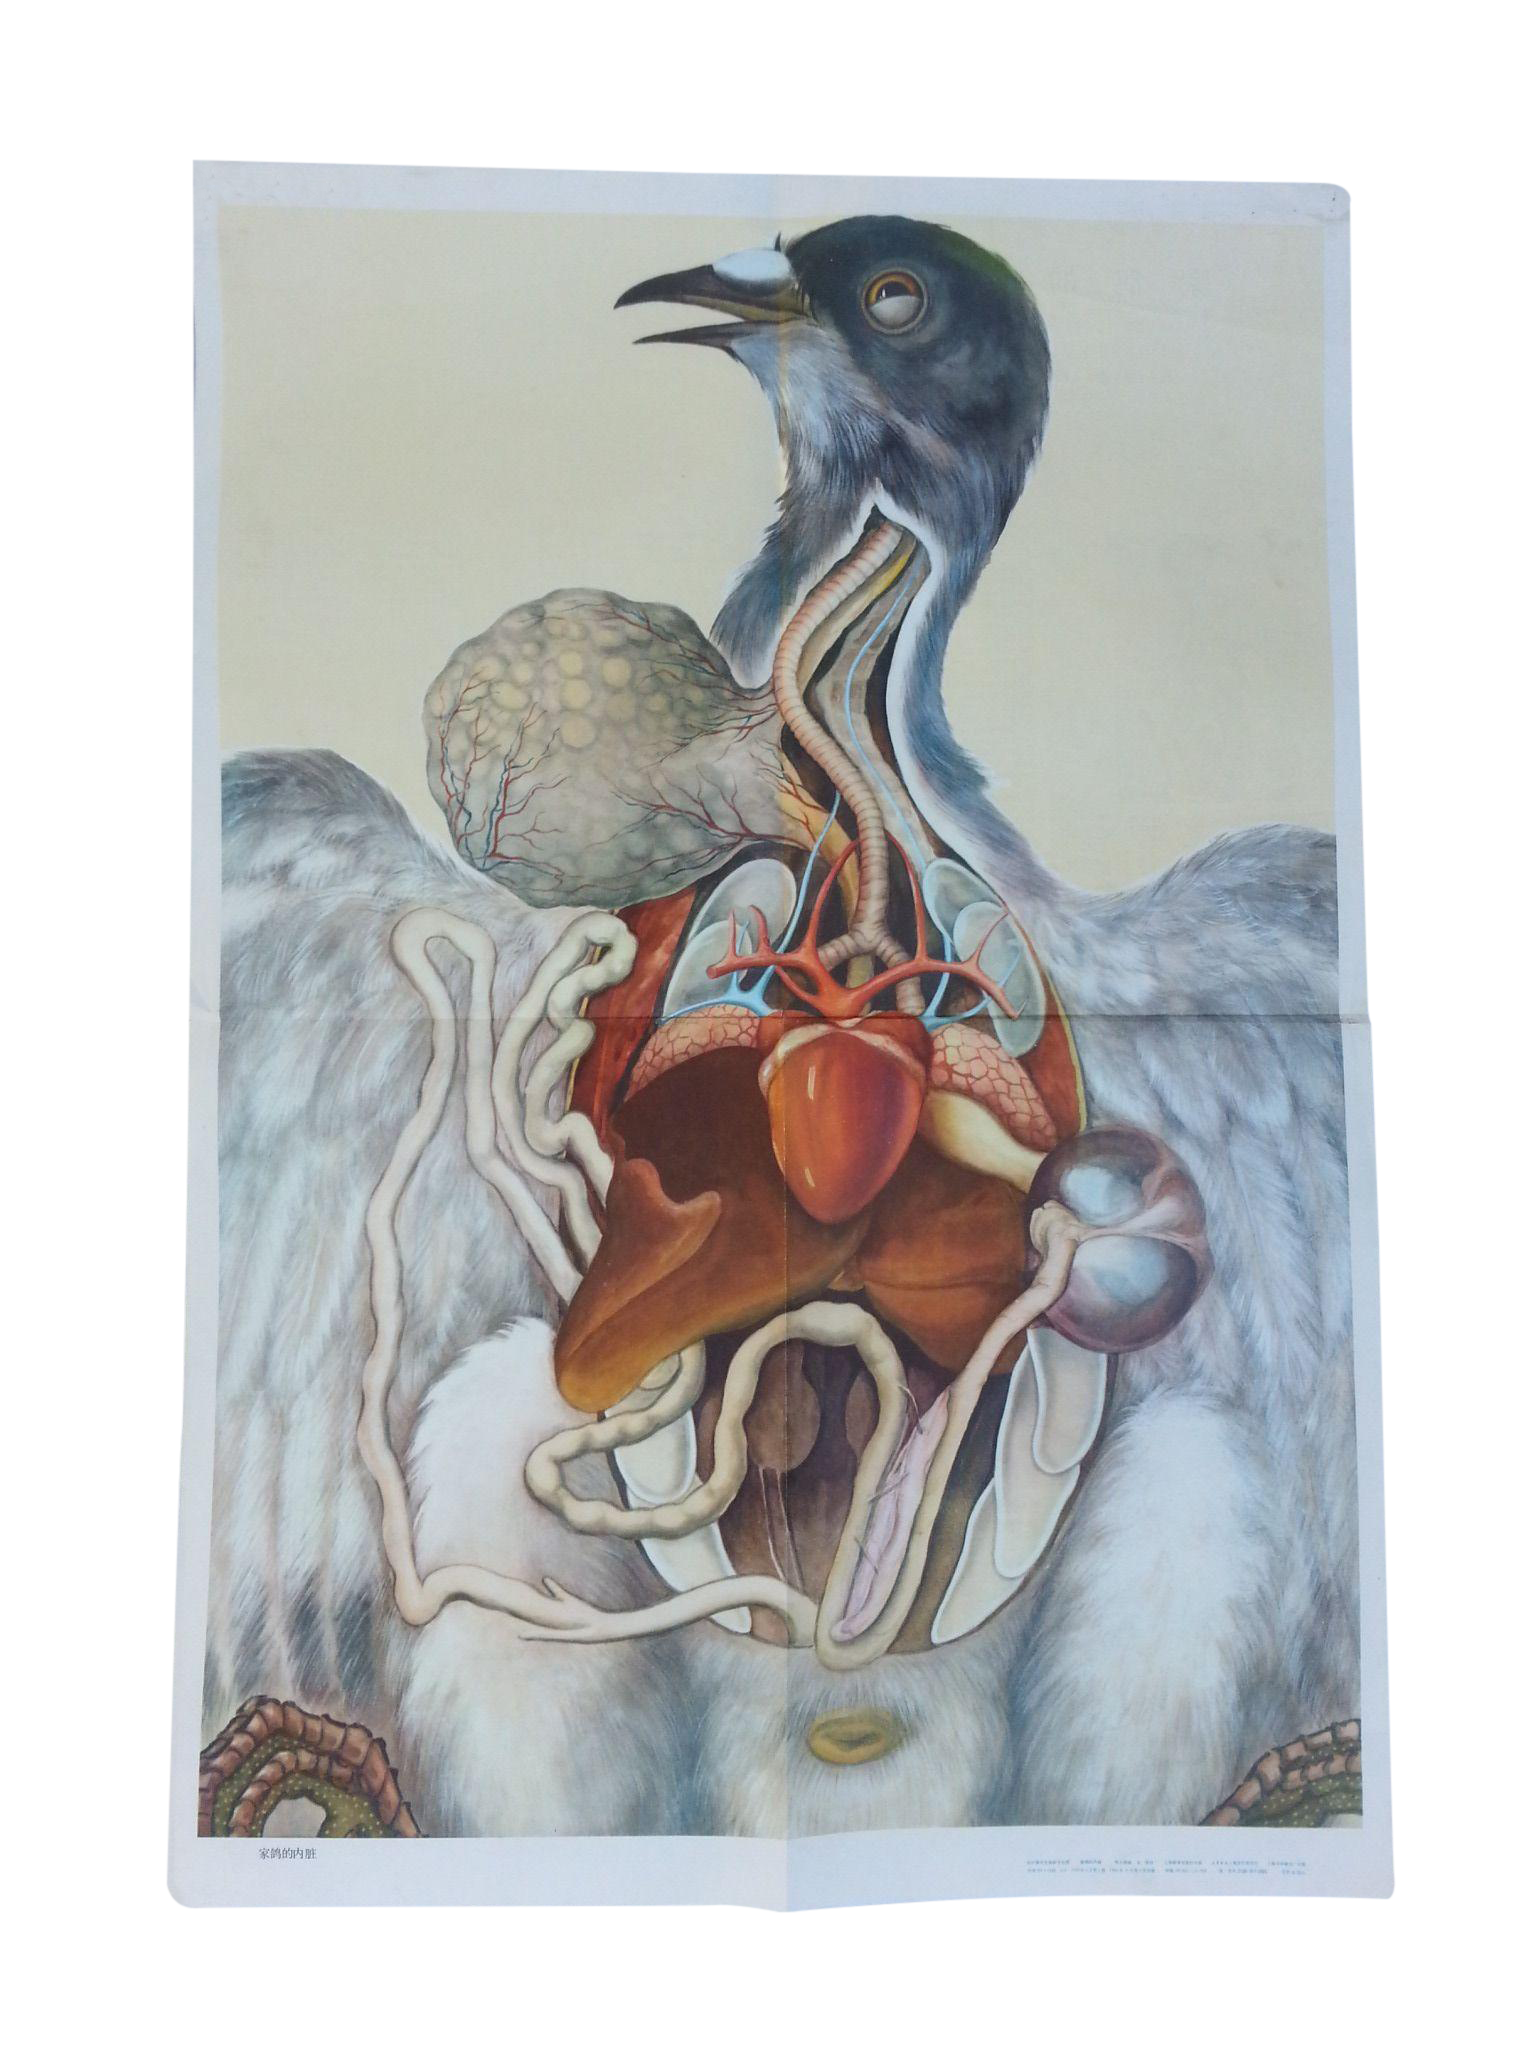 Vintage Anatomy Science Poster - Bird | Chairish